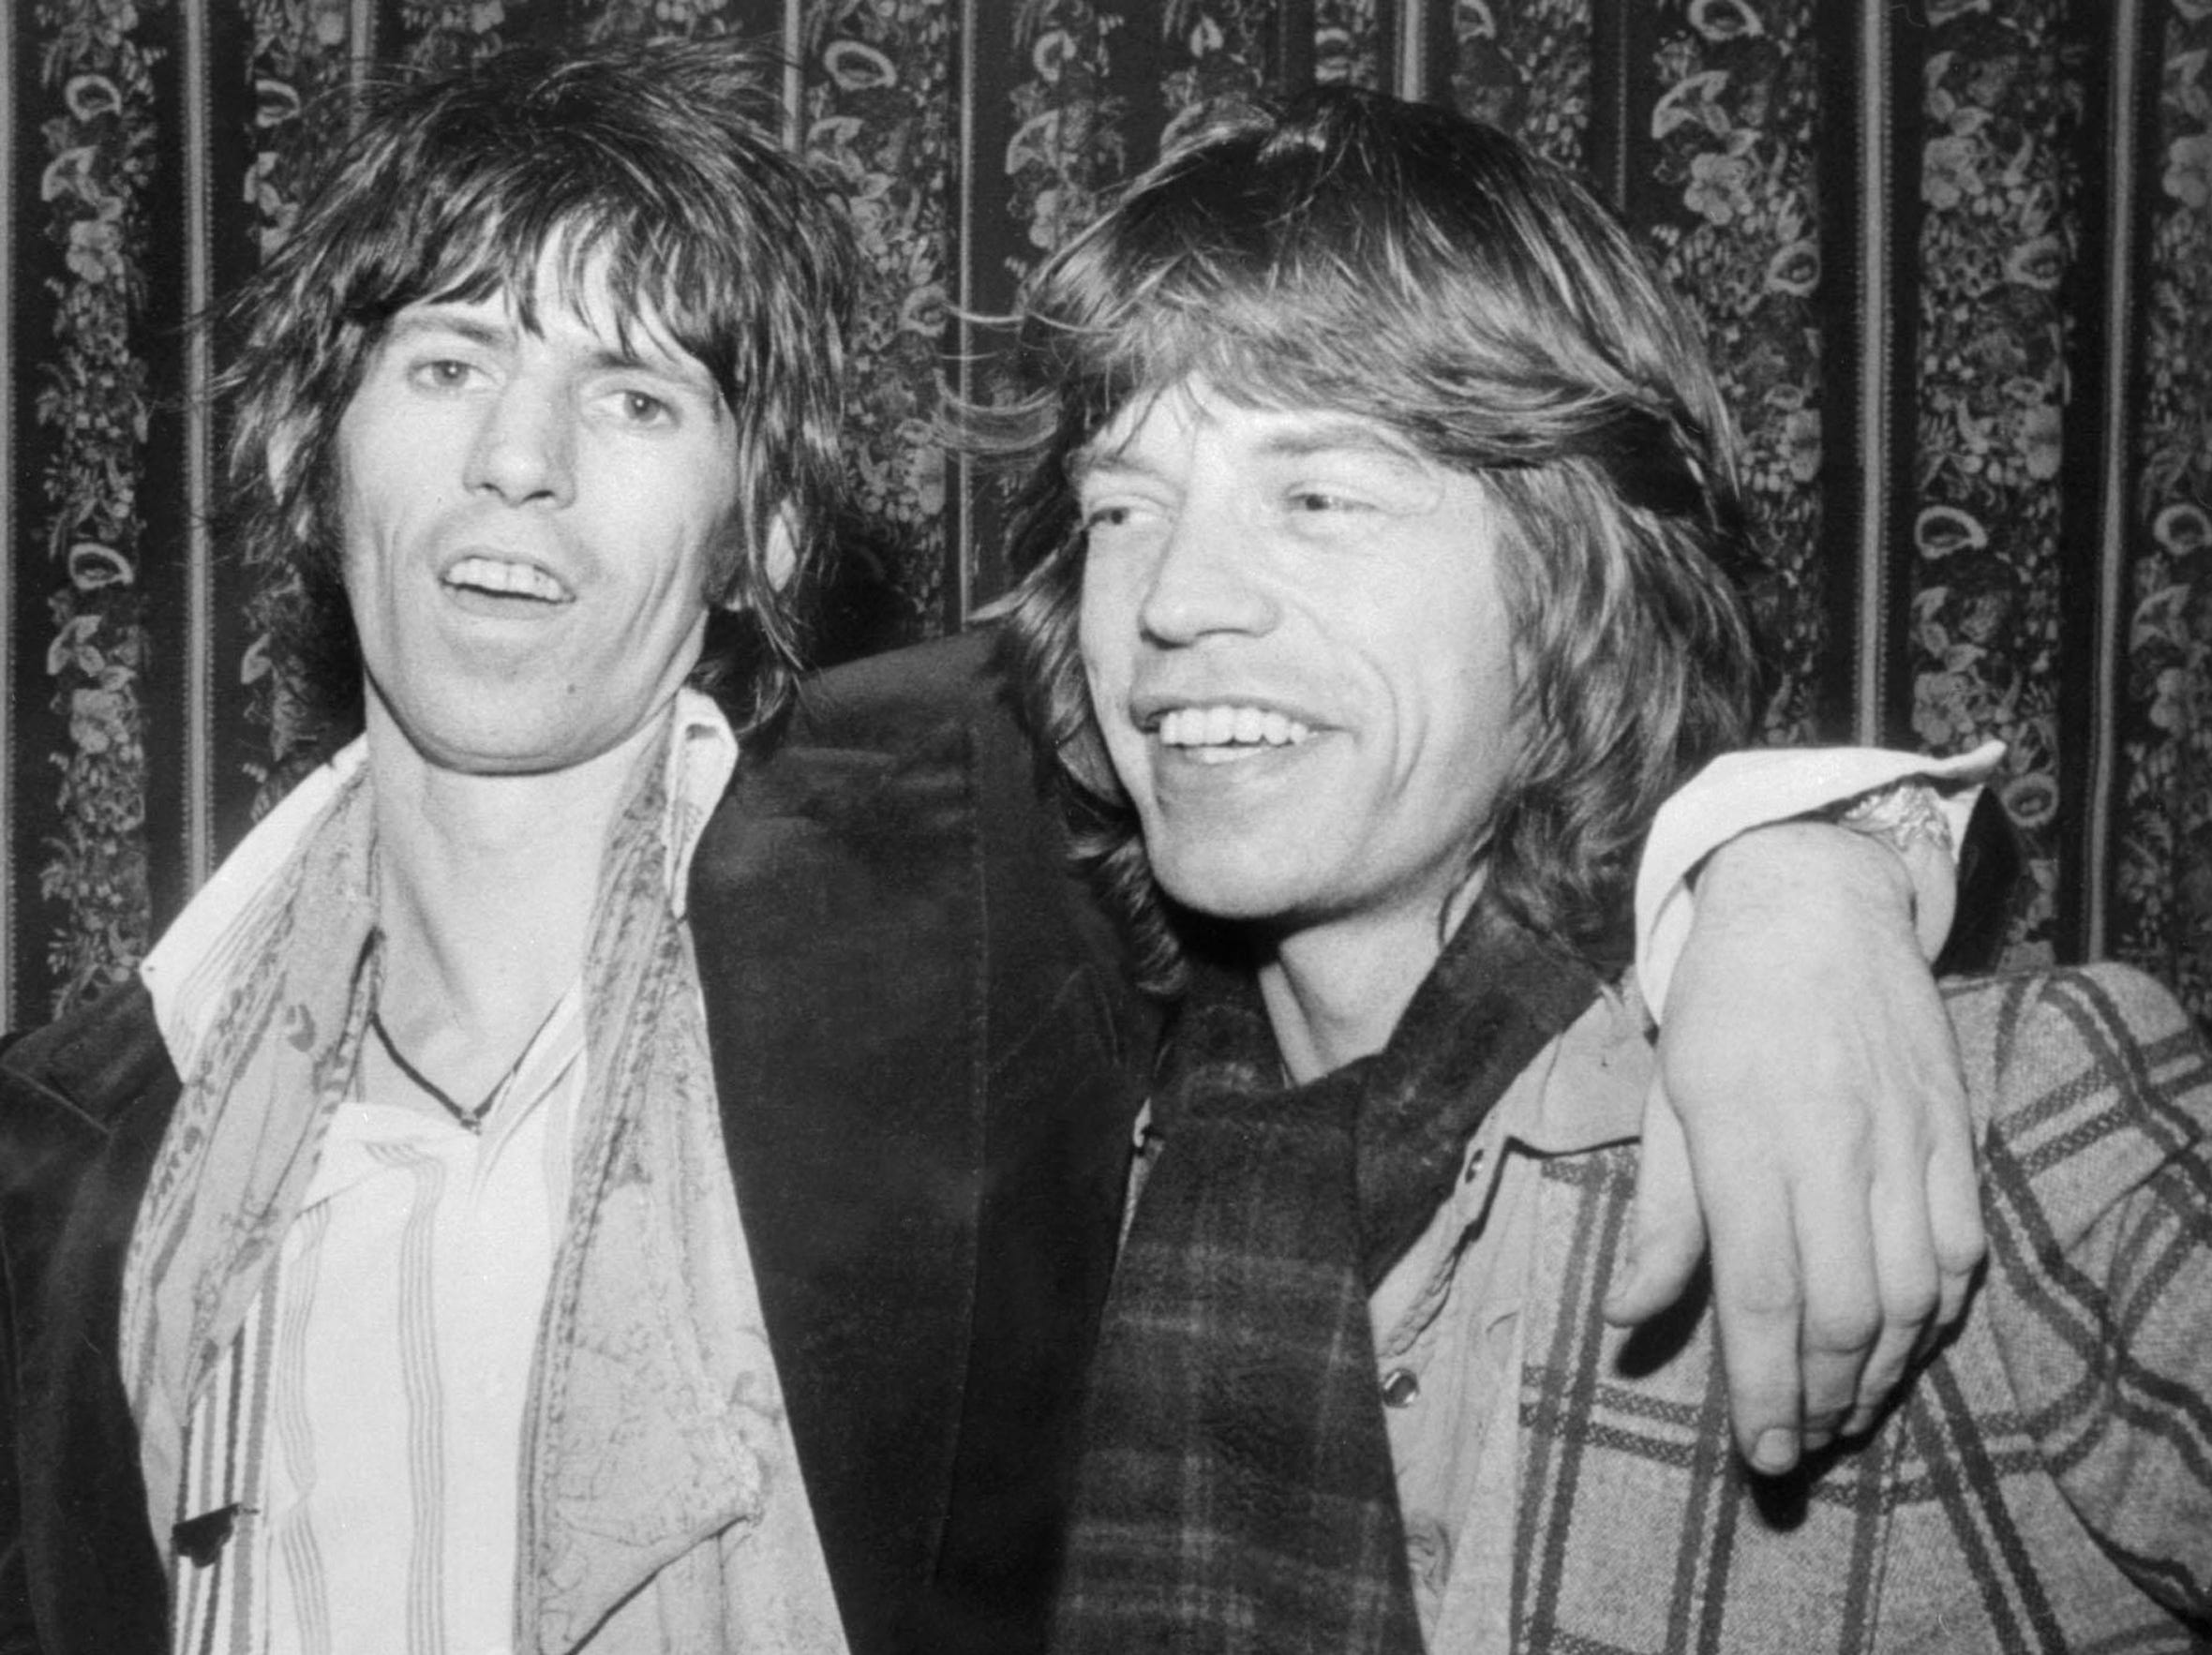 TO GO WITH AFP STORY BY JAMES PHEBY (FILES) A file picture taken in London, on January 12, 1977, shows Rolling Stones Keith Richards (L) and Mick Jagger. Most London shoppers rush by 165 Oxford Street without a second glance -- but it was here 50 years ago that The Rolling Stones played their first gig and changed the landscape of pop music forever. Mick Jagger, Keith Richards and Brian Jones played The Marquee Club on July 12, 1962 with three others, the first time they performed under the band name which would become synomymous worldwide with excess and muscial flair.  AFP PHOTO /FILES-/AFP/GettyImages ORIG FILE ID: 512206243